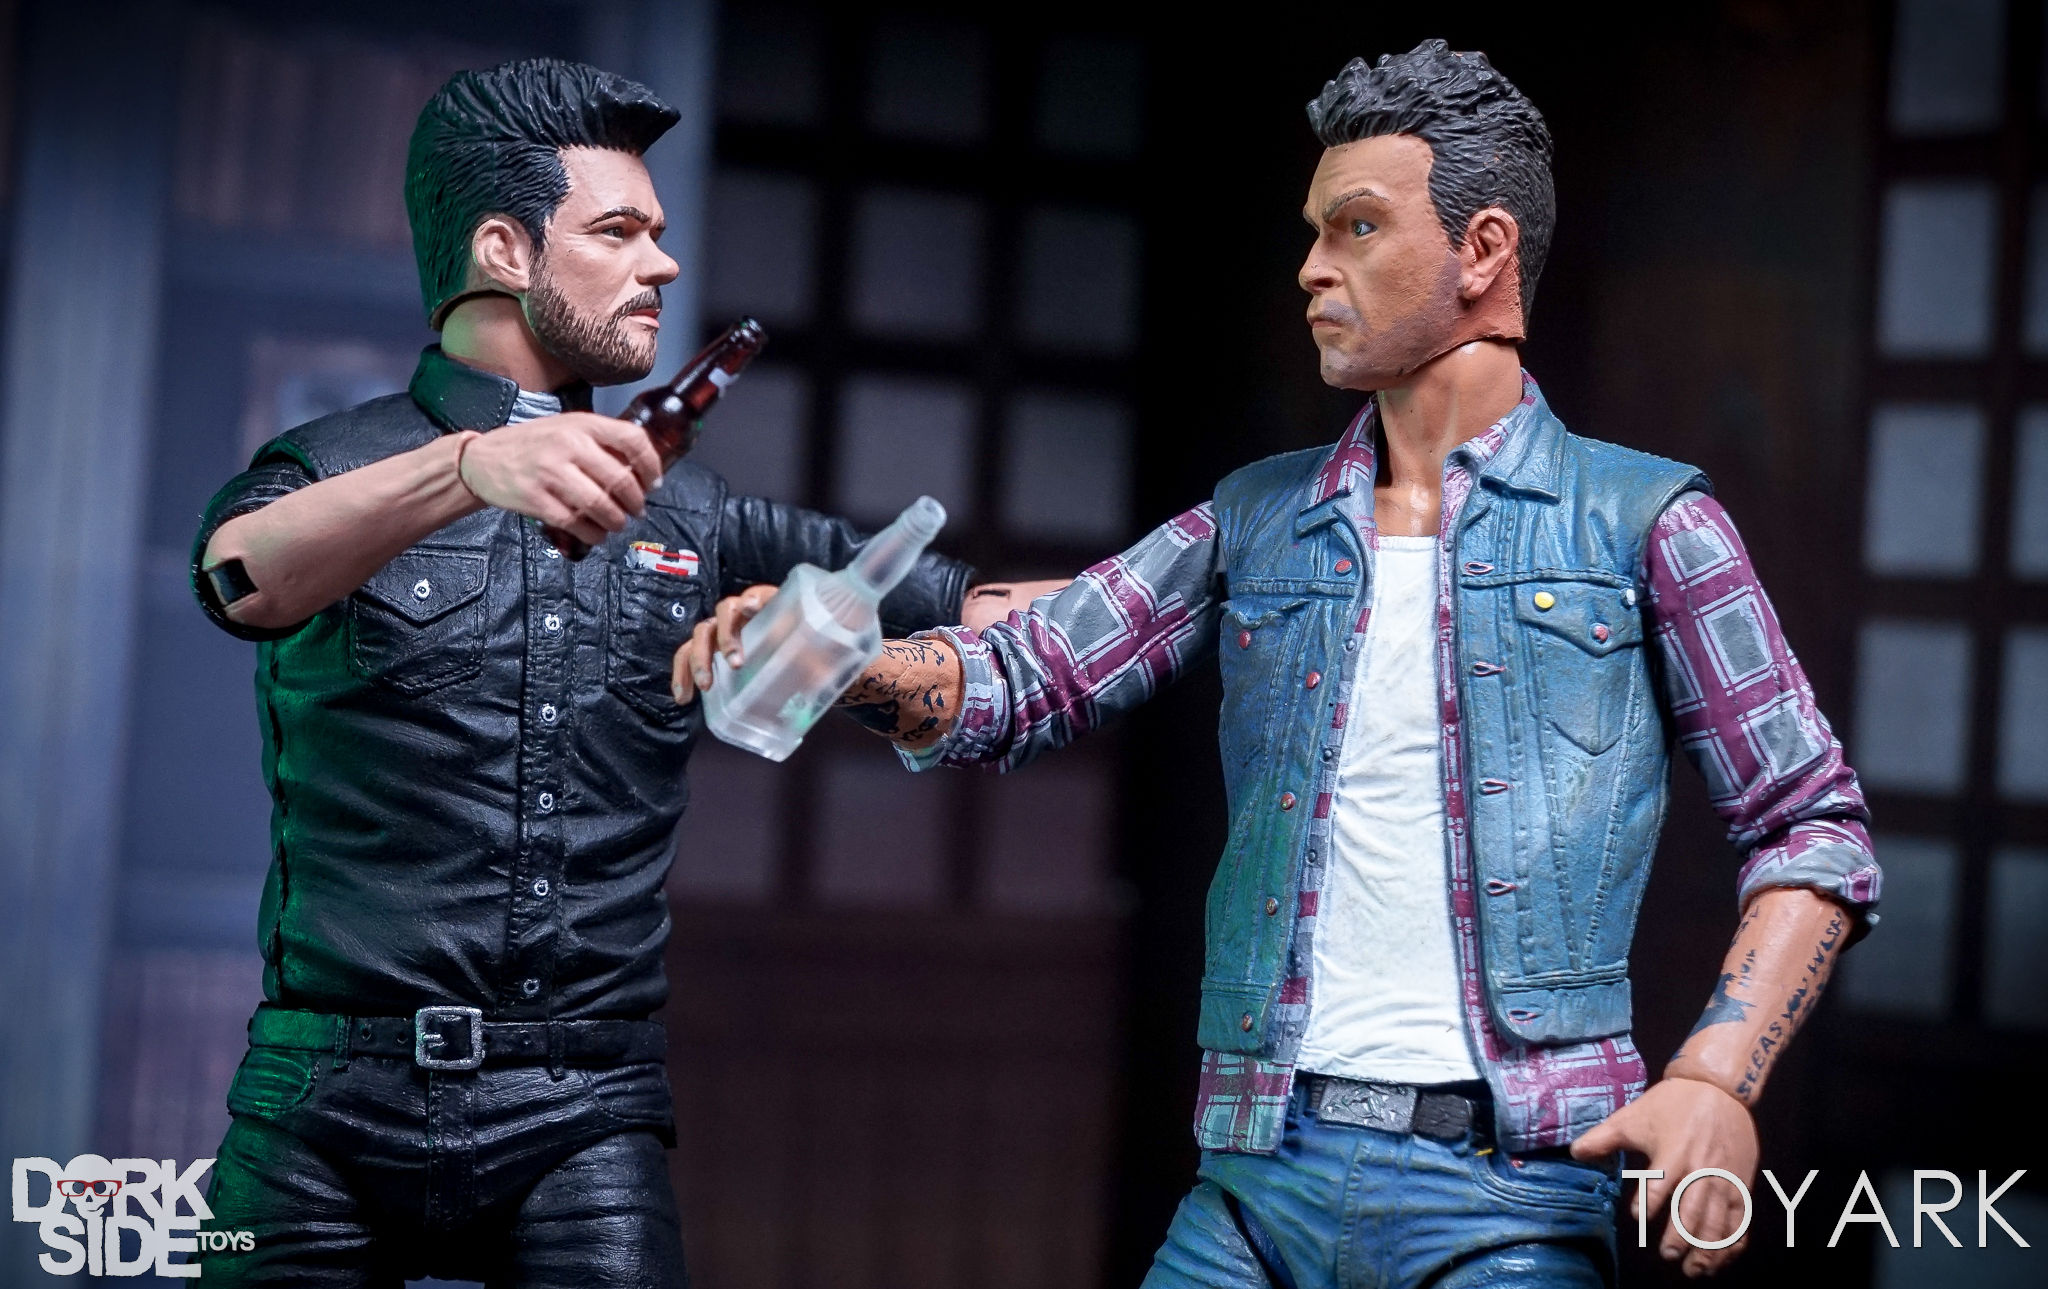 http://news.toyark.com/wp-content/uploads/sites/4/2017/05/NECA-Preacher-Figures-046.jpg